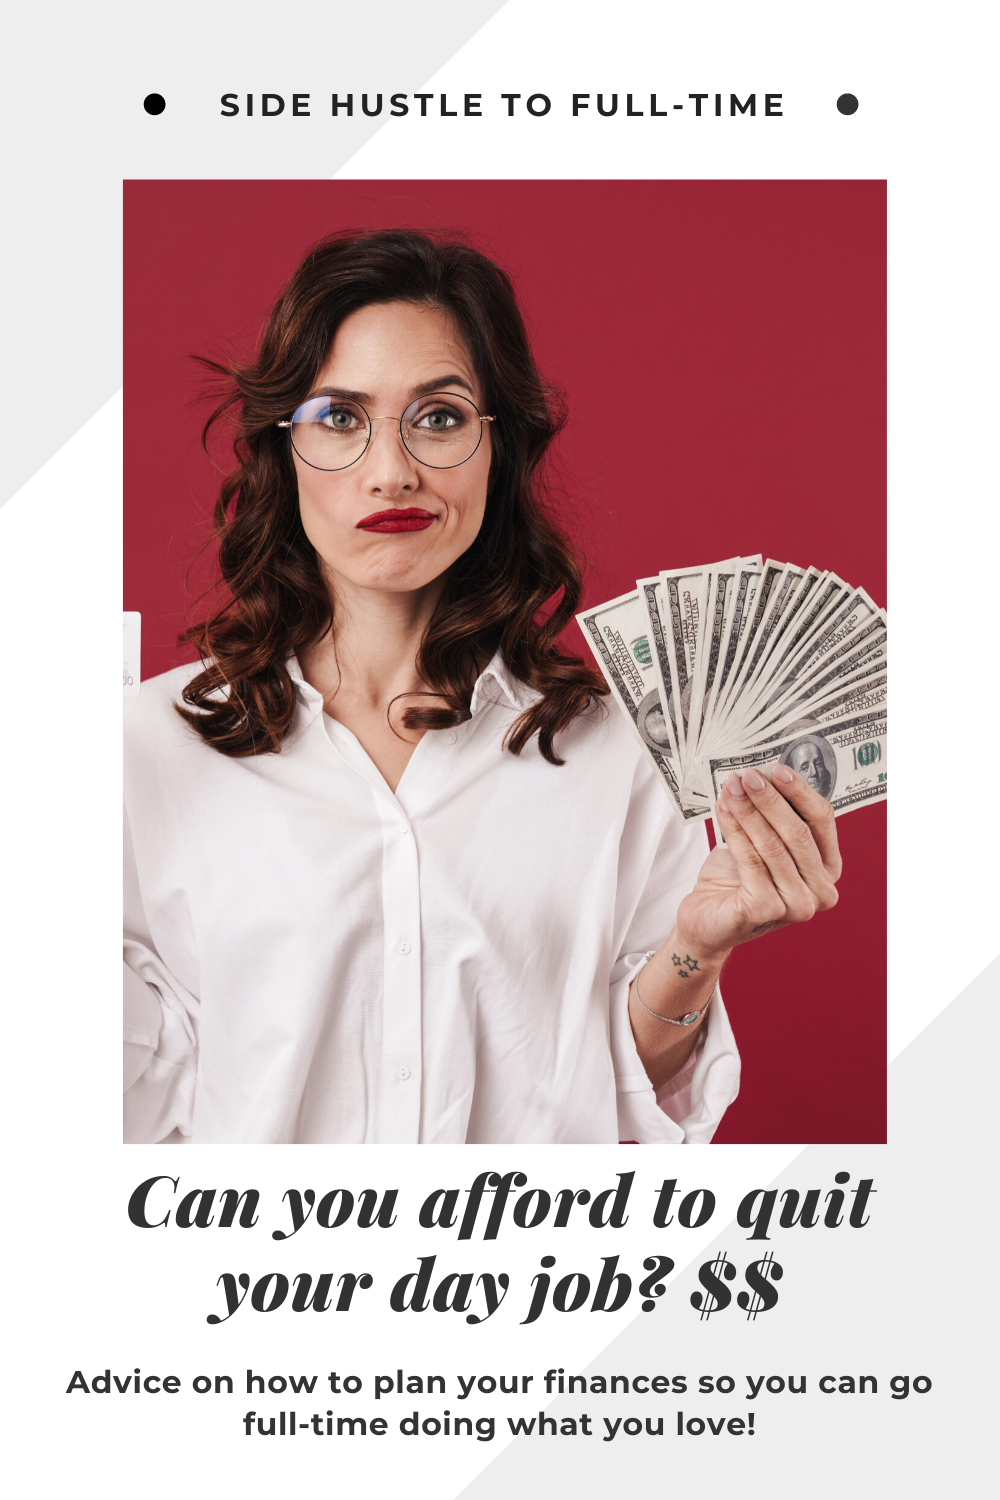 Can you afford to quit your day job?